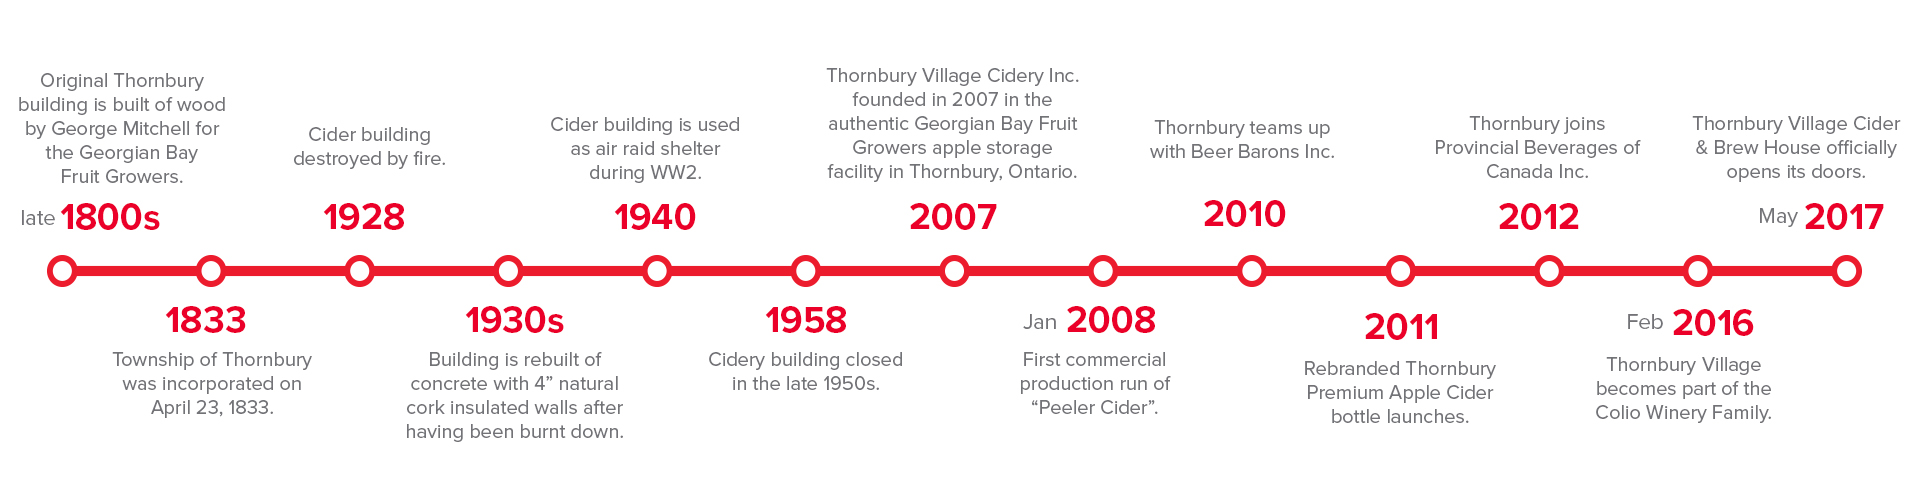 ThornburyCiderHistoryTimeline_UpdatedJune2019